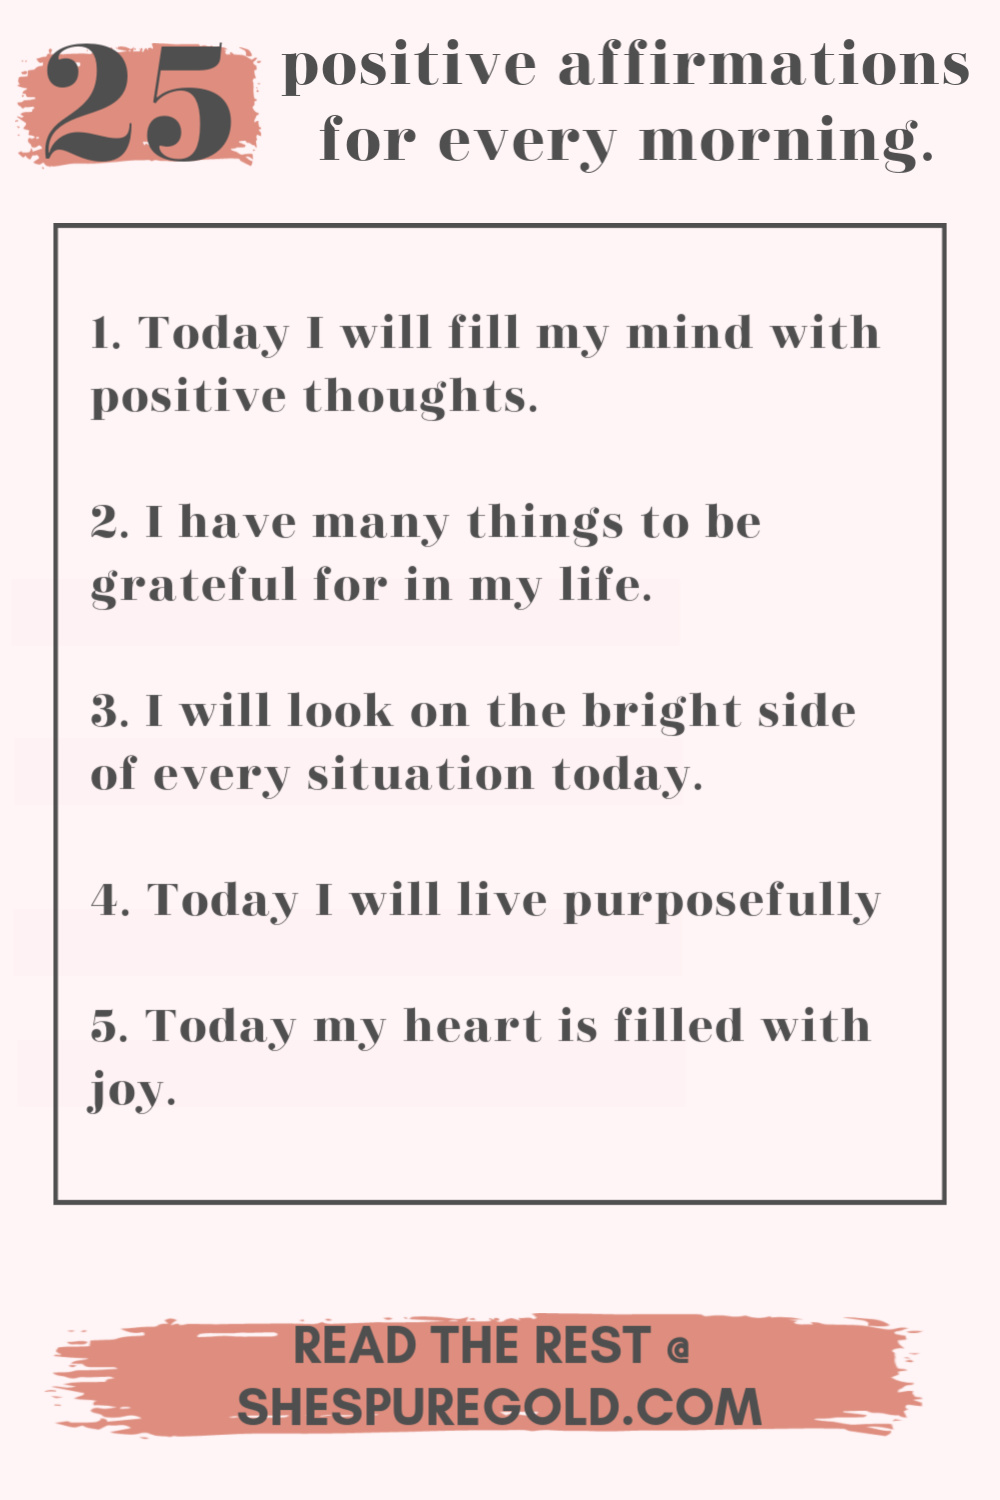 25 positive morning affirmations